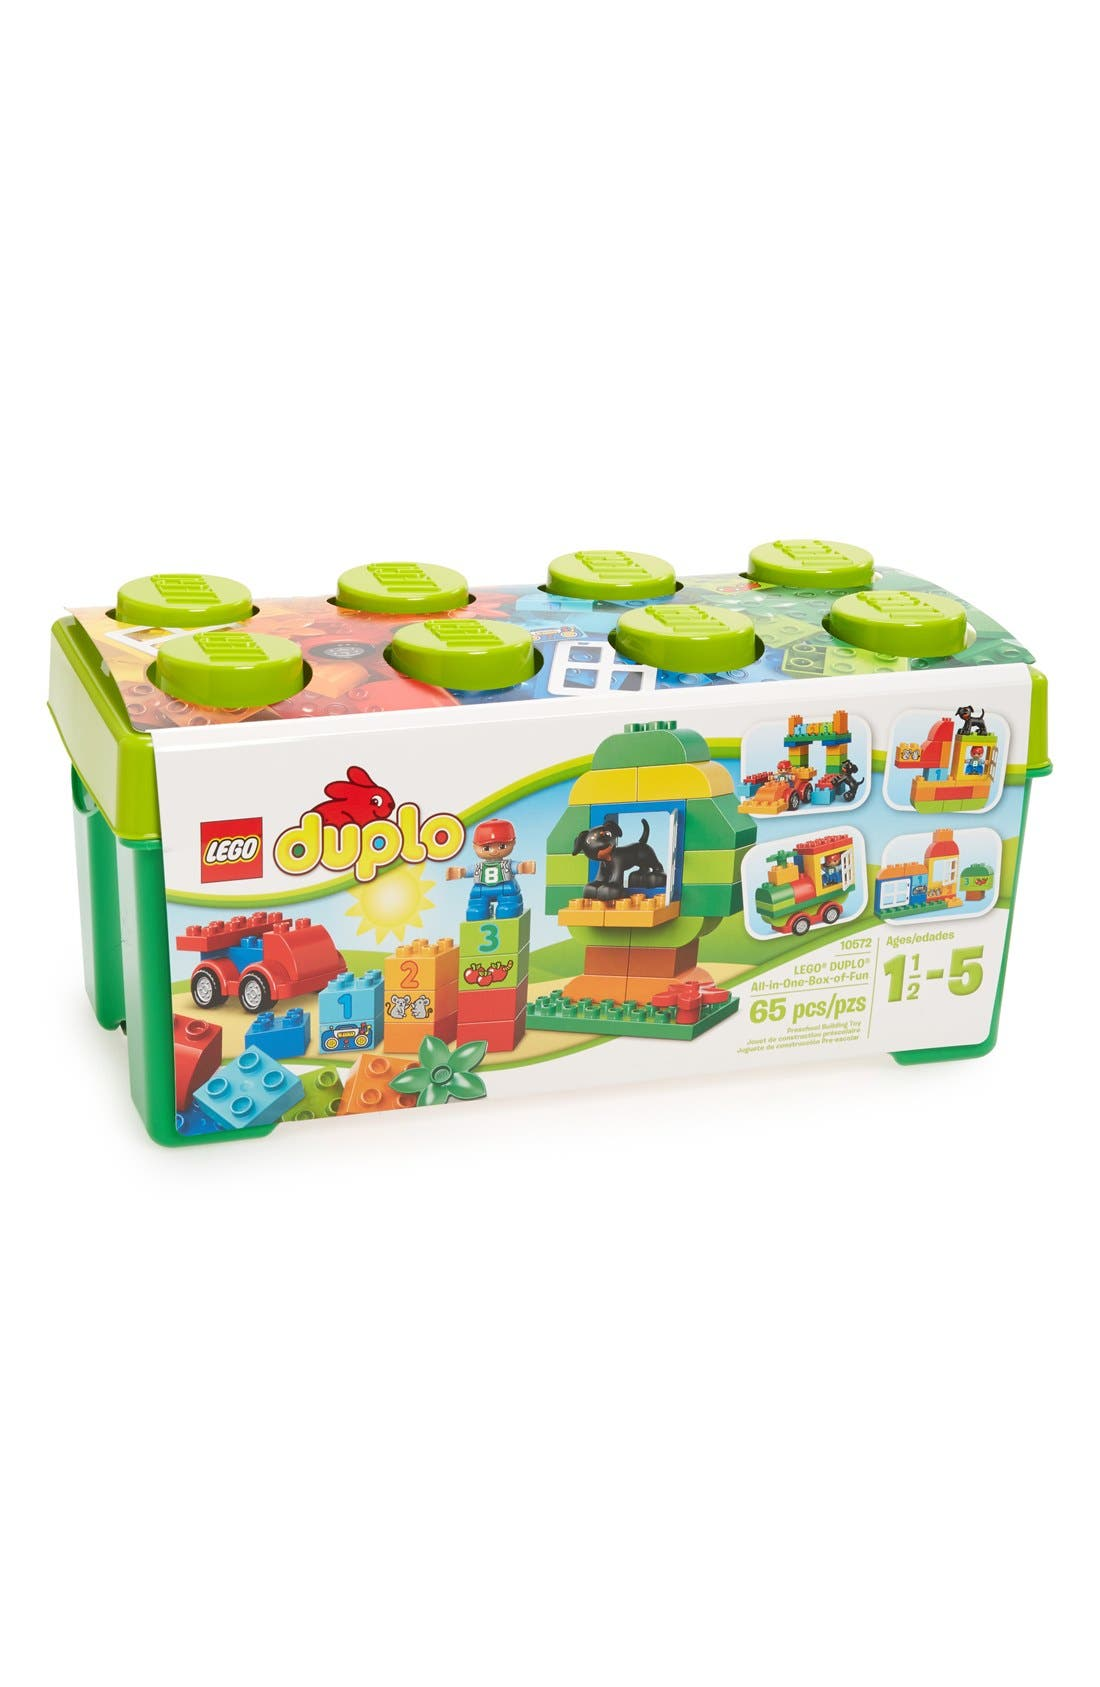 Main Image - LEGO® DUPLO® All-in-One Box of Fun - 10572